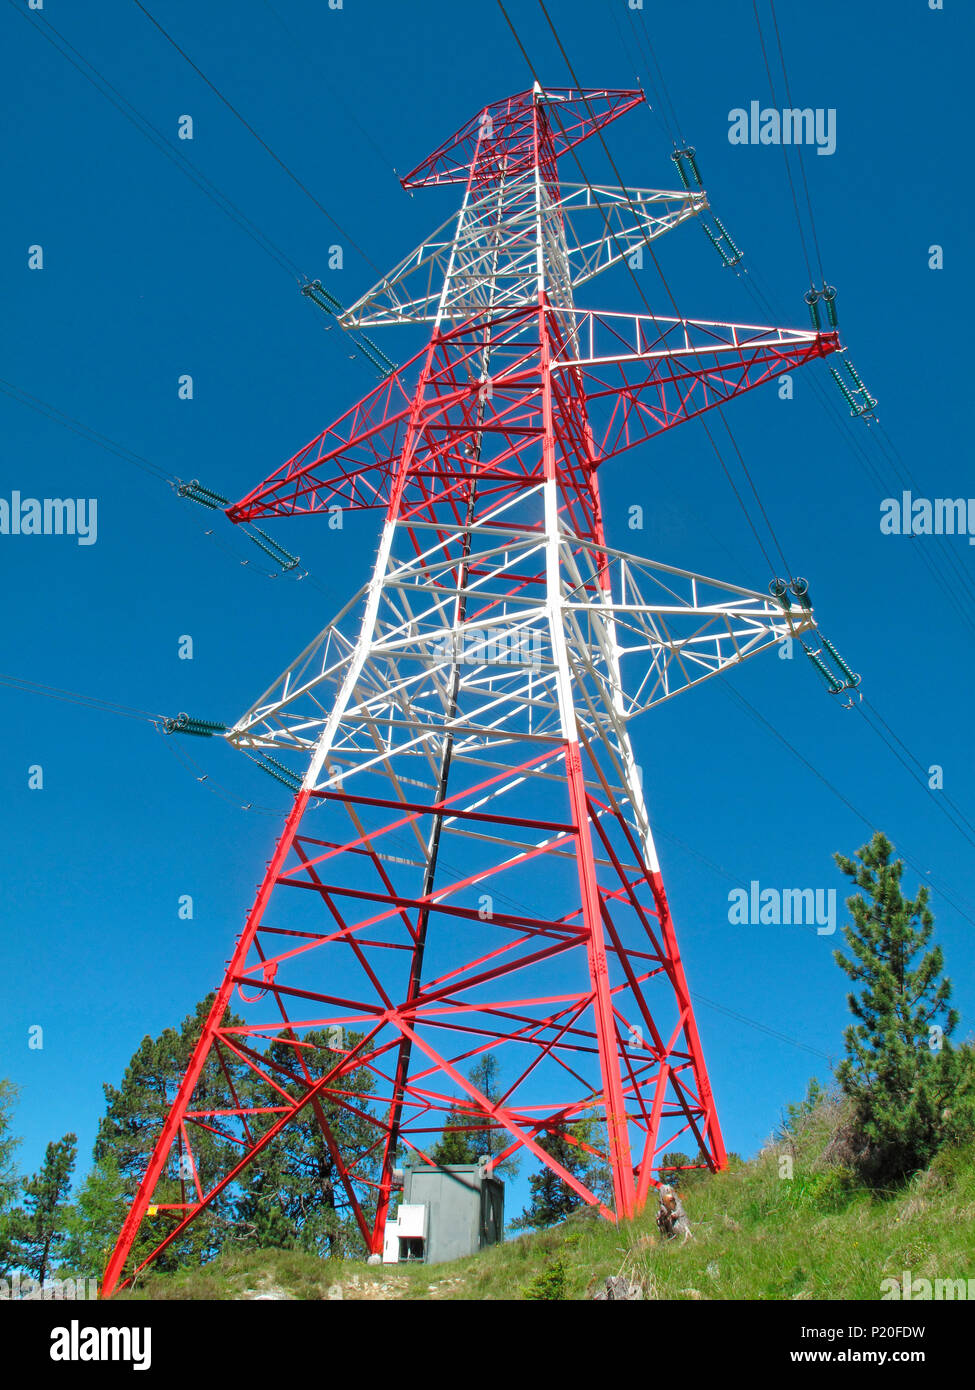 Austria,Tirol, high voltage power line pylon - Stock Image